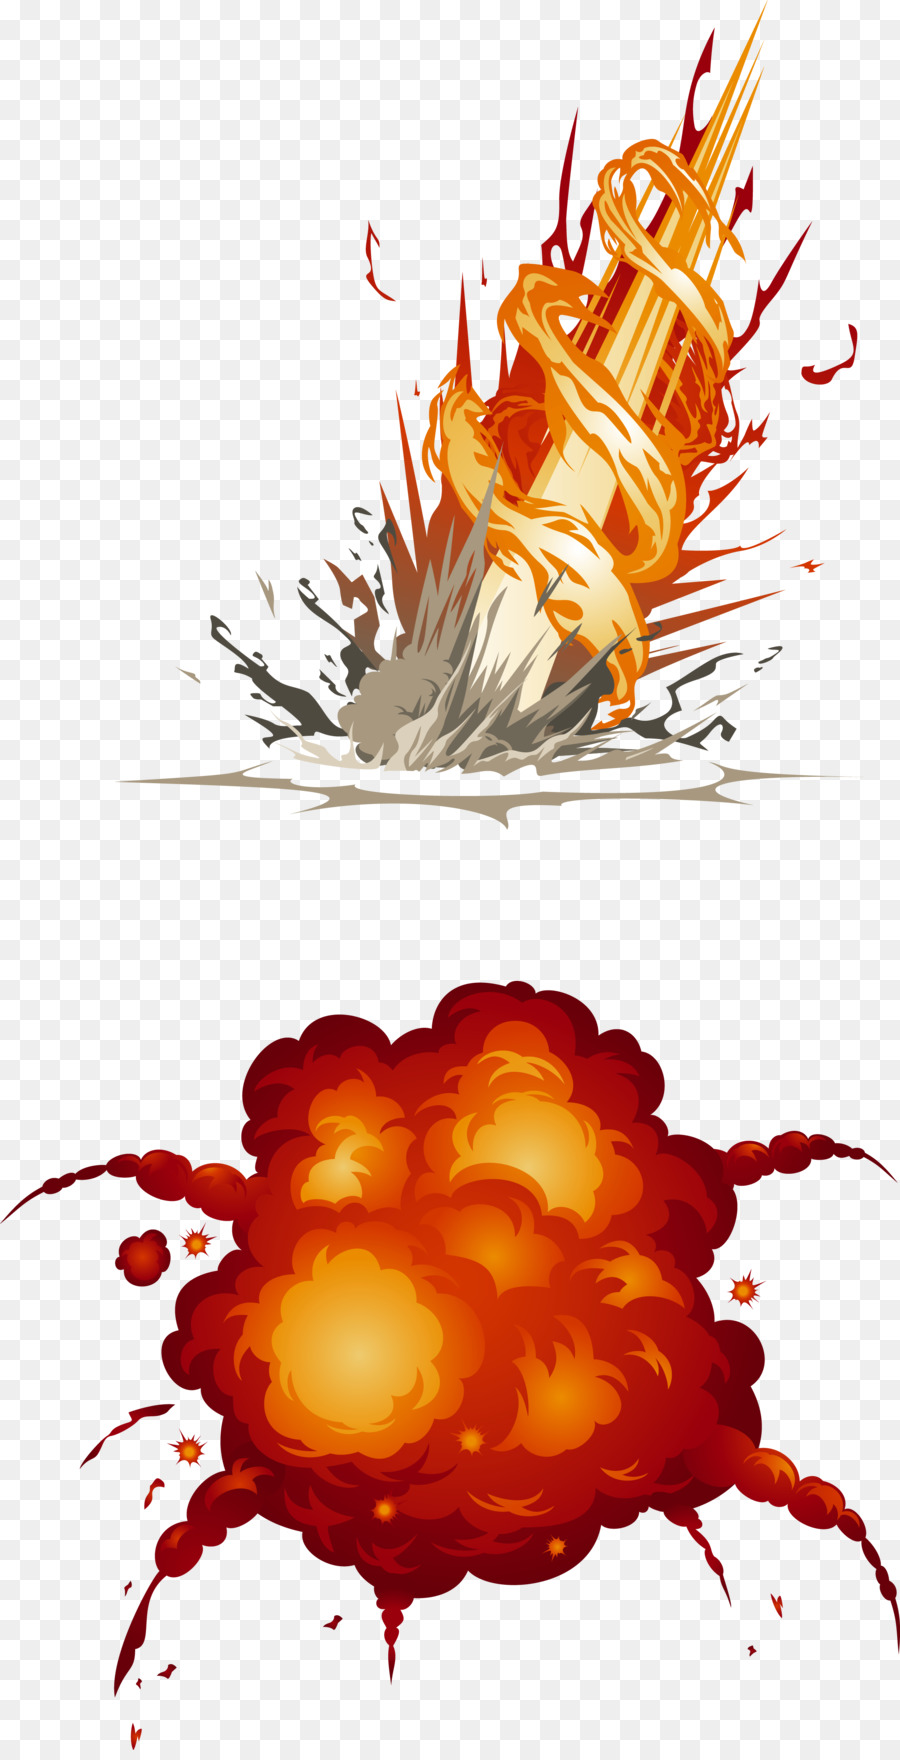 cartoon explosion png download 2244 4364 free transparent explosion png download cleanpng kisspng cartoon explosion png download 2244